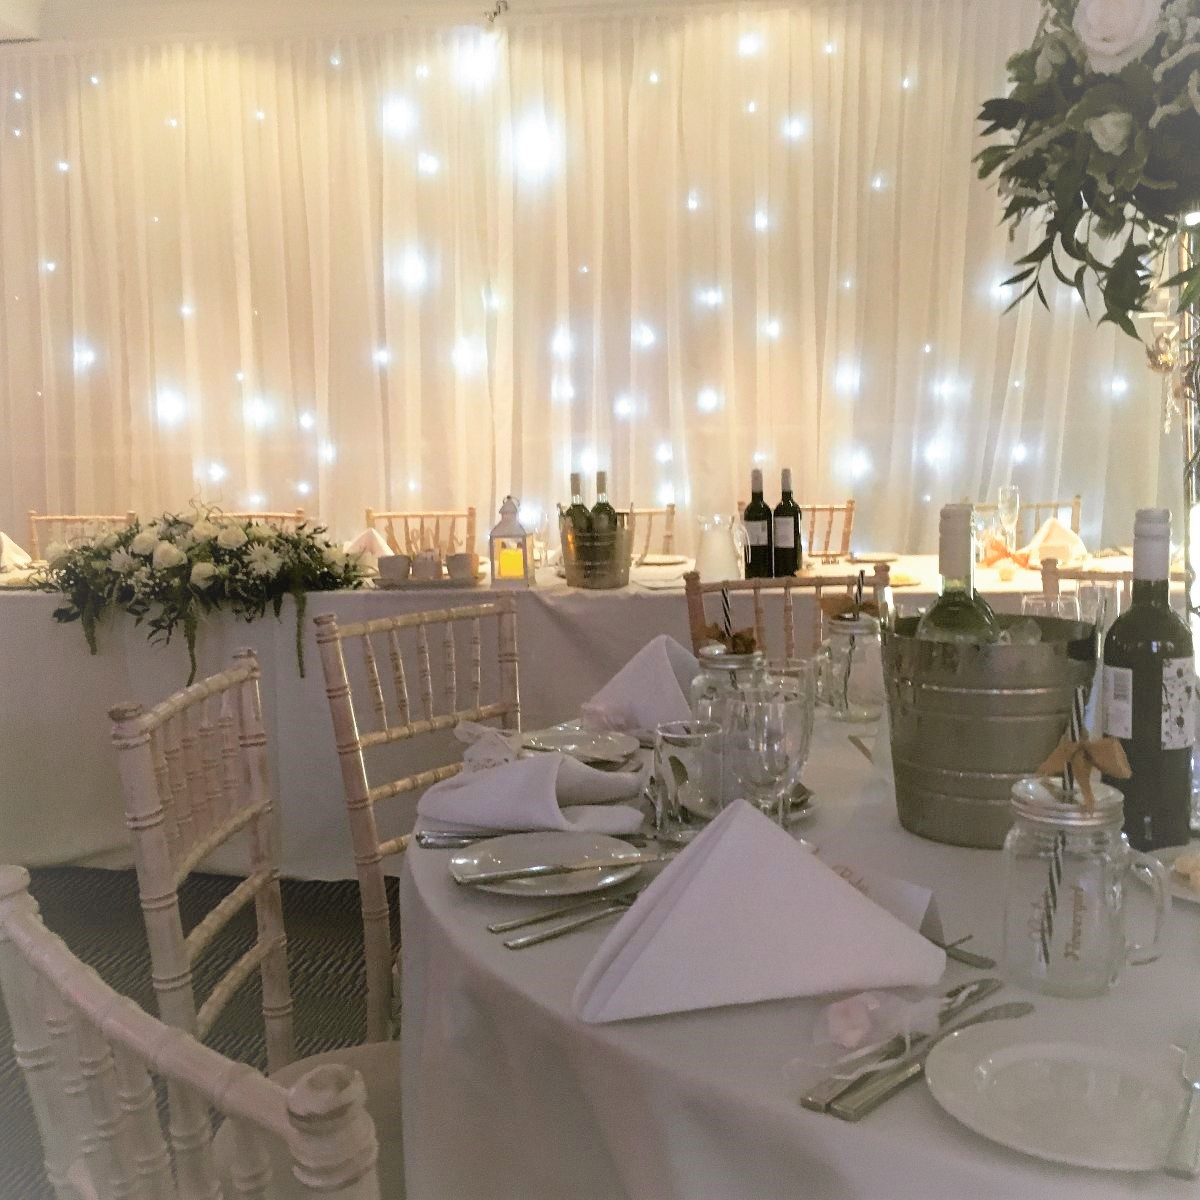 Creating a romantic atmosphere for your special day.